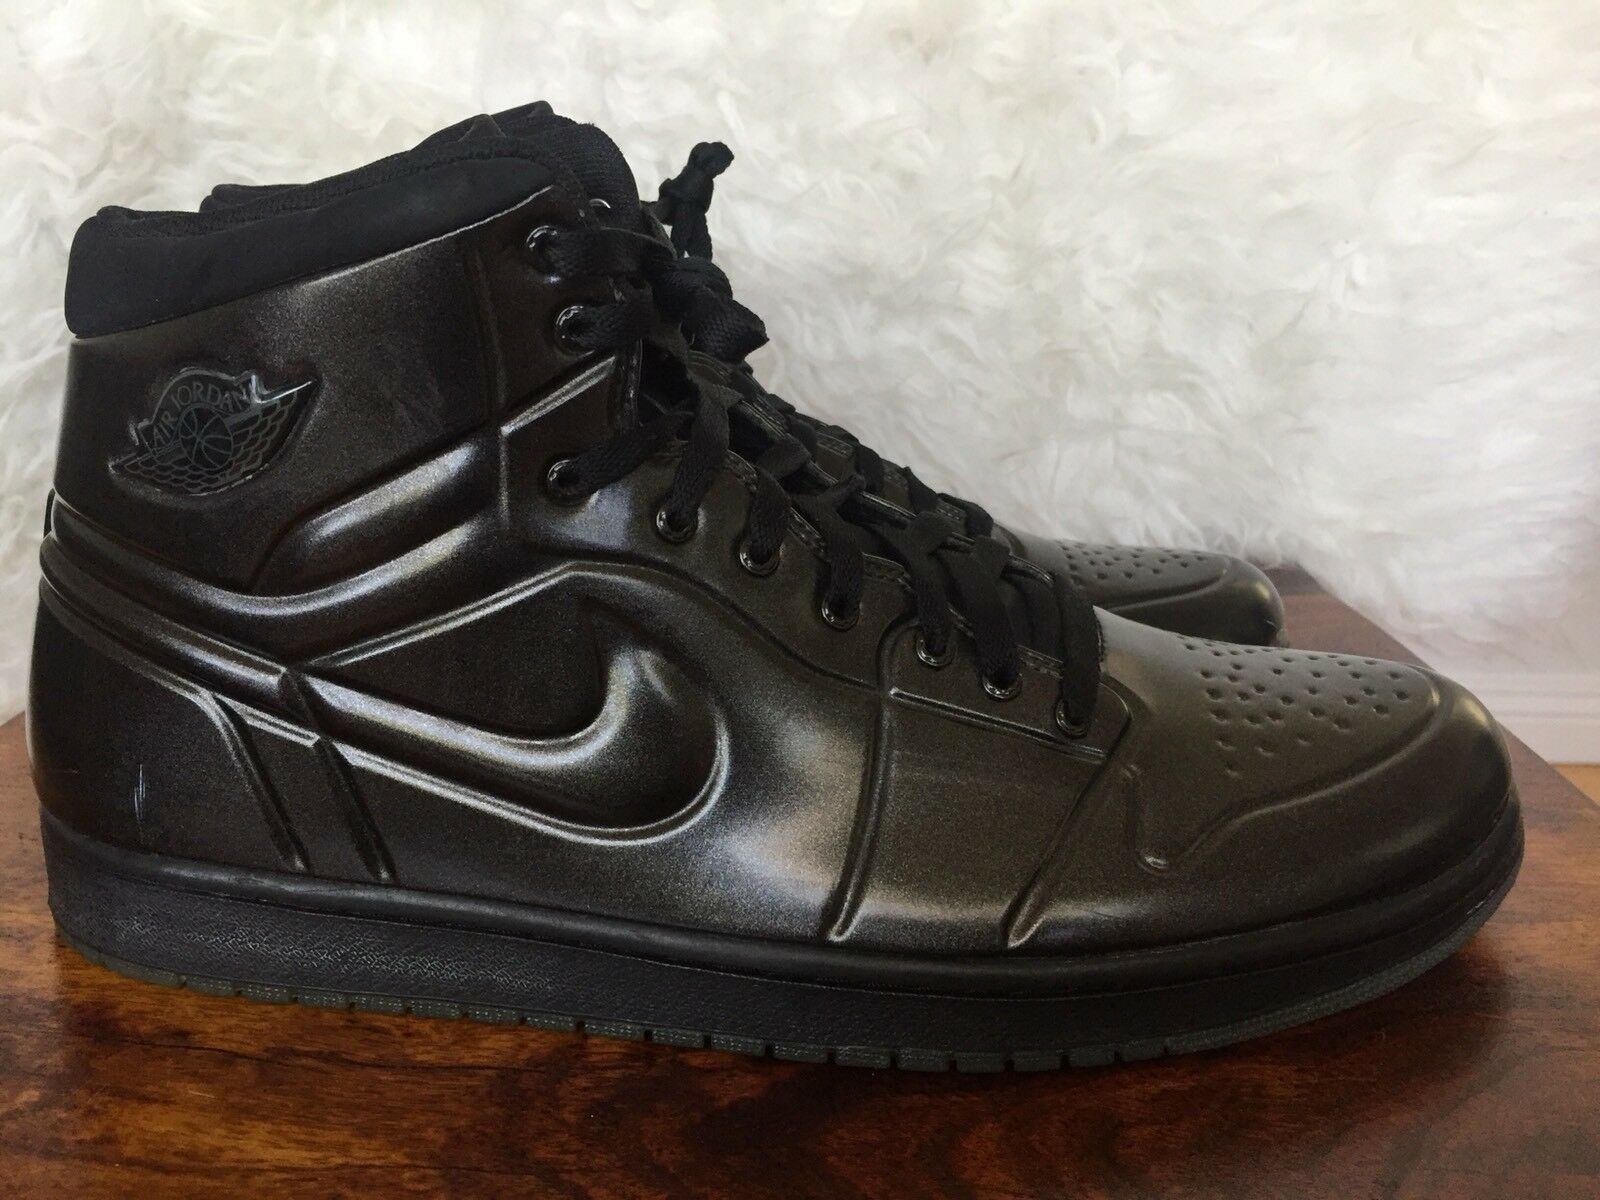 Nike Air Jordan 1 Anodized Black Ds Mens Comfortable The most popular shoes for men and women